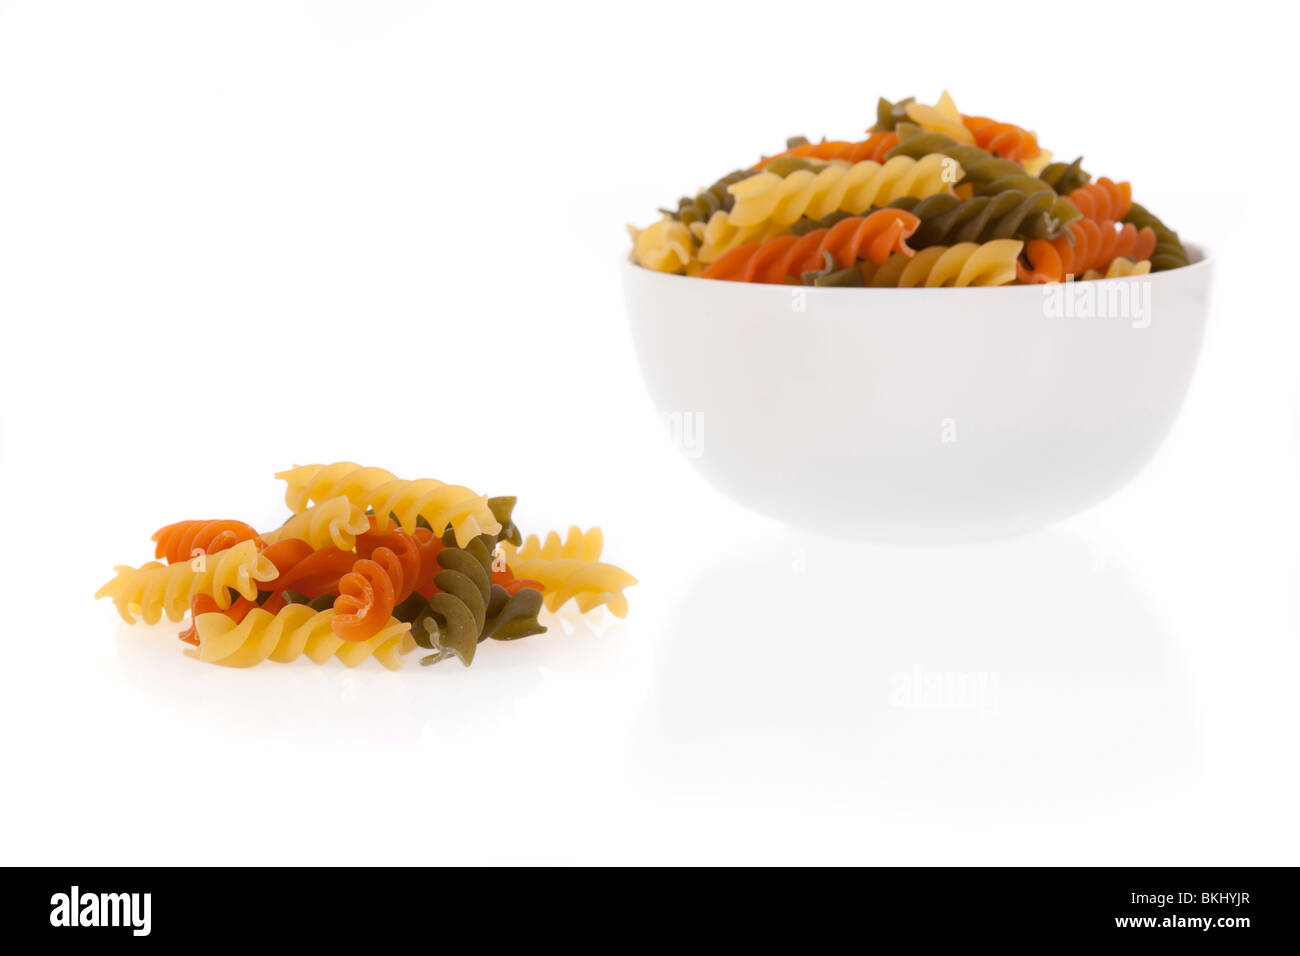 Tricolore fusilli pasta in a bowl isolated on a white background - Stock Image